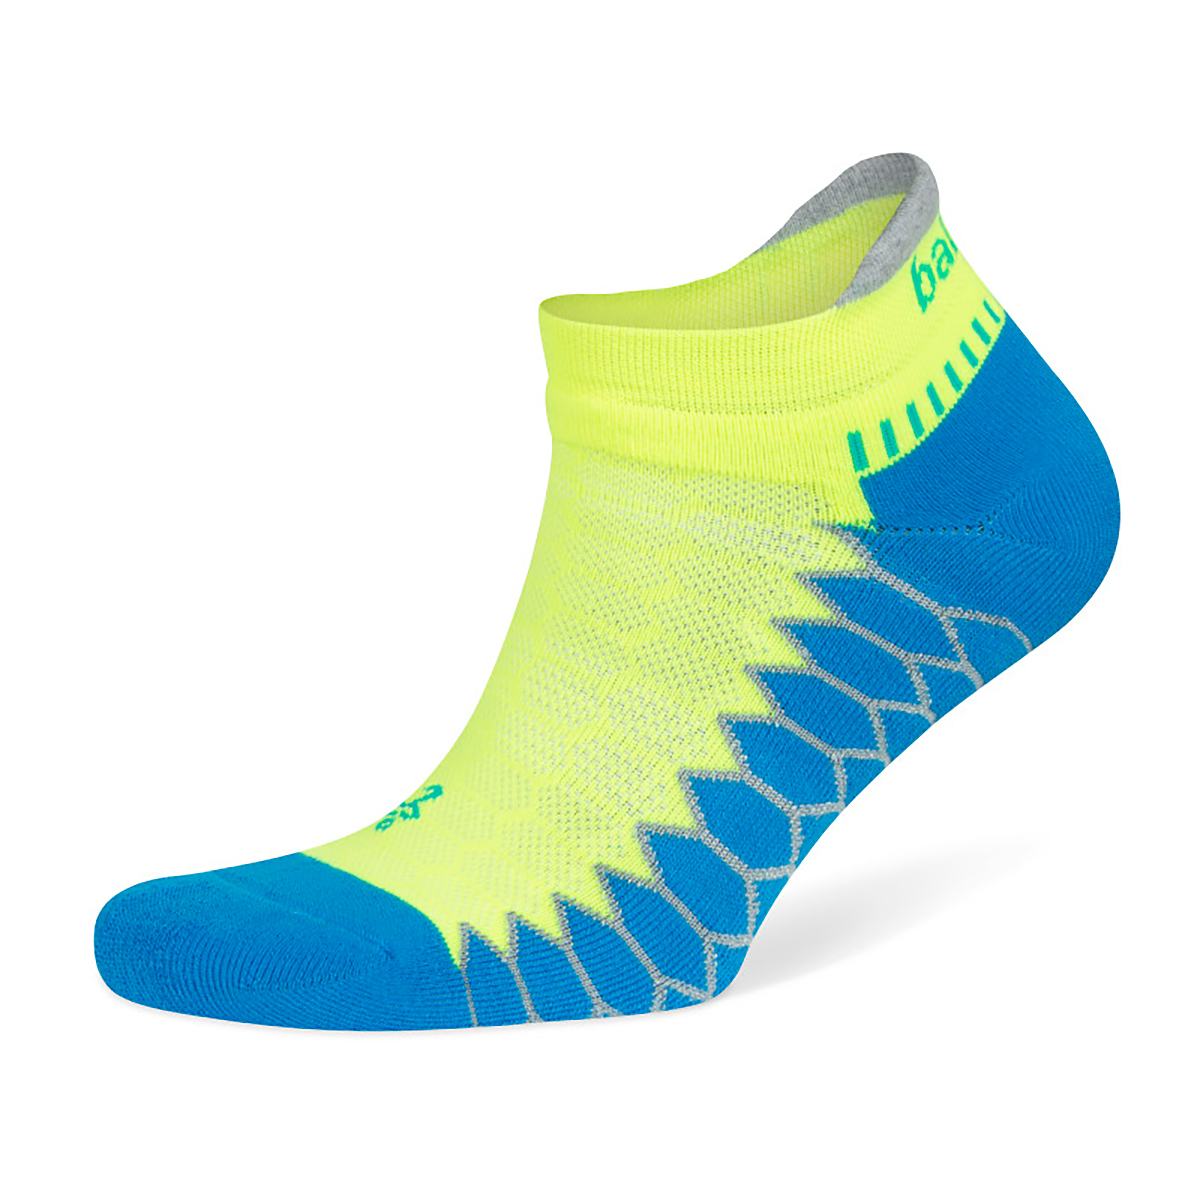 Unisex Balega Silver No Show Socks - Color: Bright Turquoise/Neon Lime Size: S, Blue, large, image 1